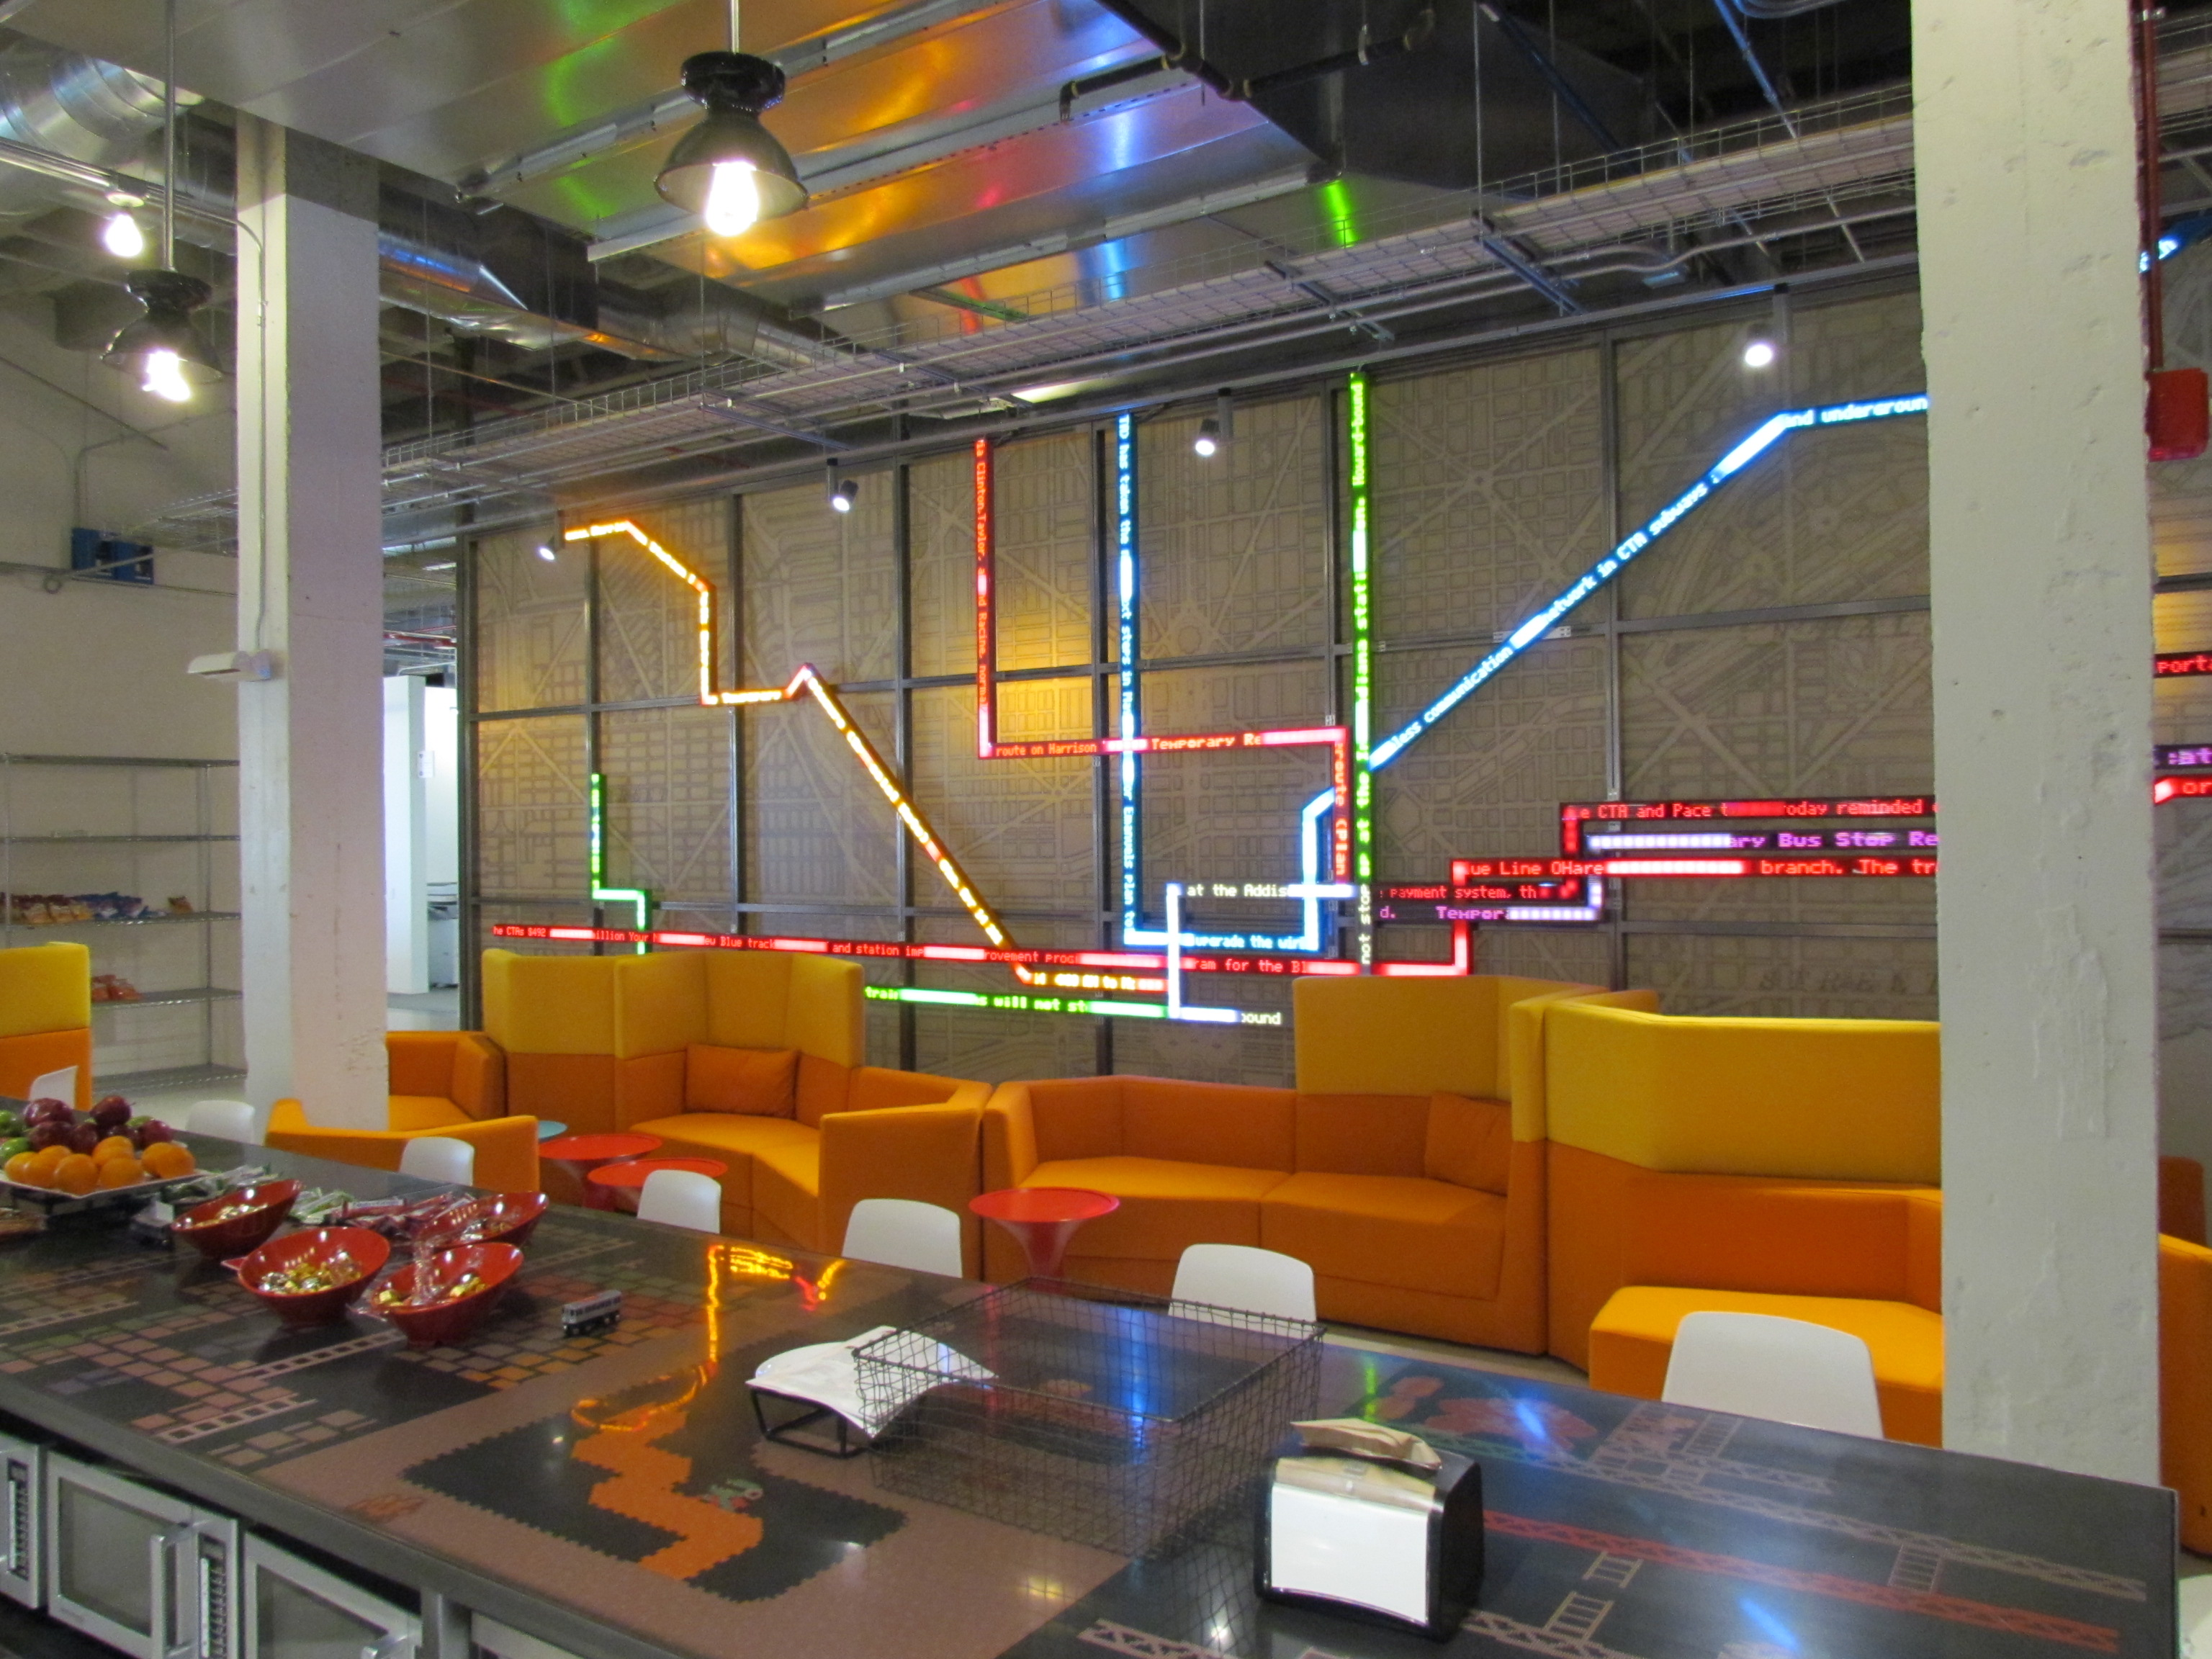 """A break room with Chicago's """"L"""" train map used as information display"""